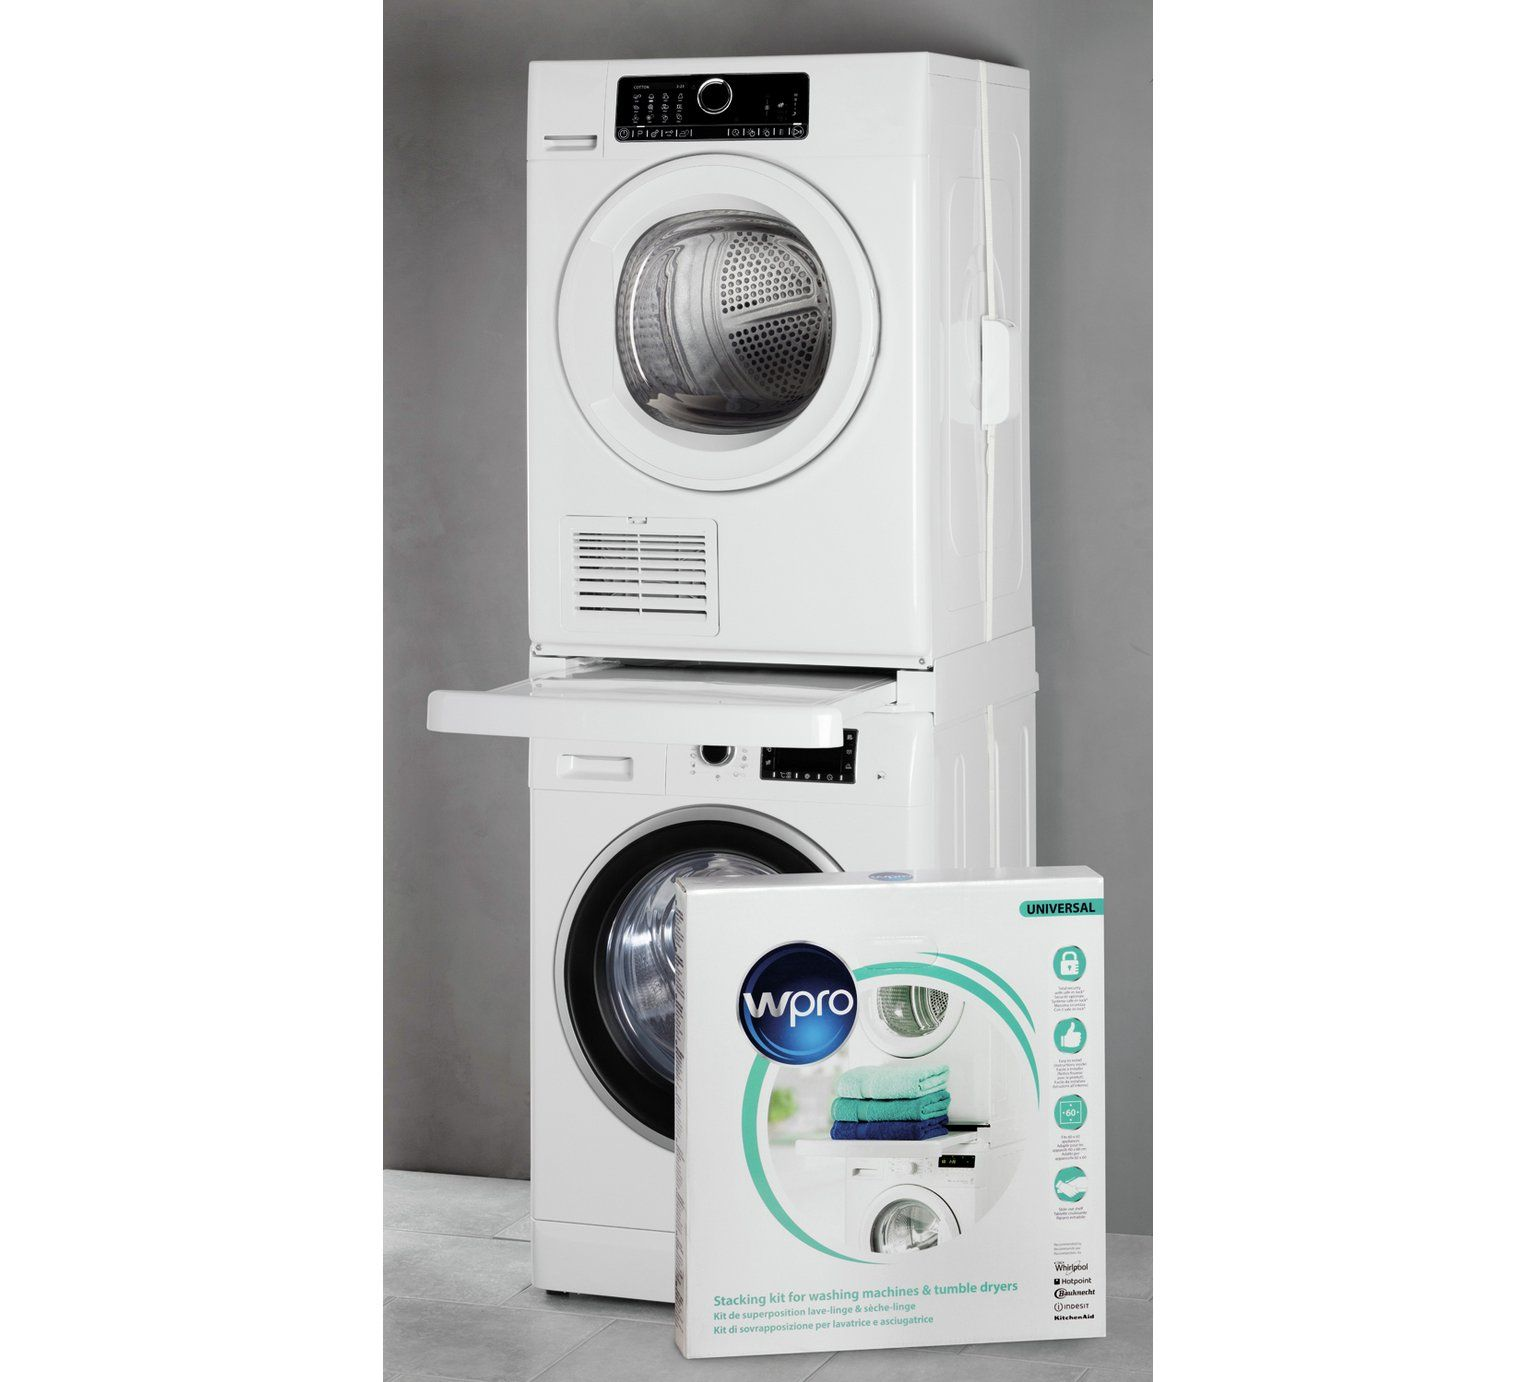 Buy Wpro Tumble Dryer Universal Stacking Kit Large Kitchen Appliance Accessories Argos Laundry Room Inspiration Kitchen Large Appliances Utility Room Designs